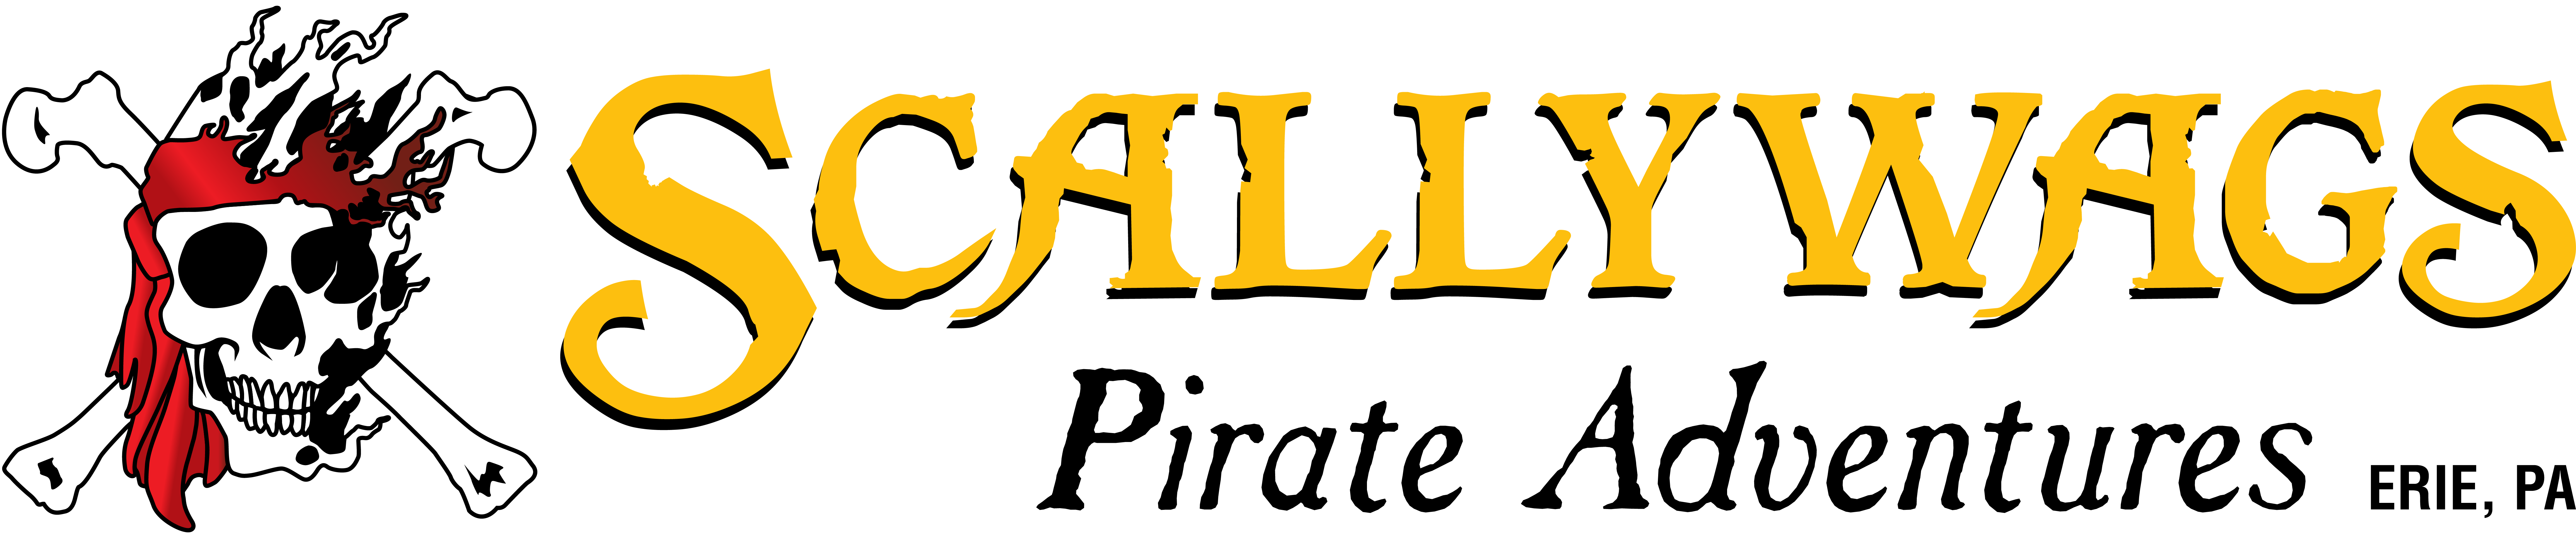 Scallywags Pirate Adventures